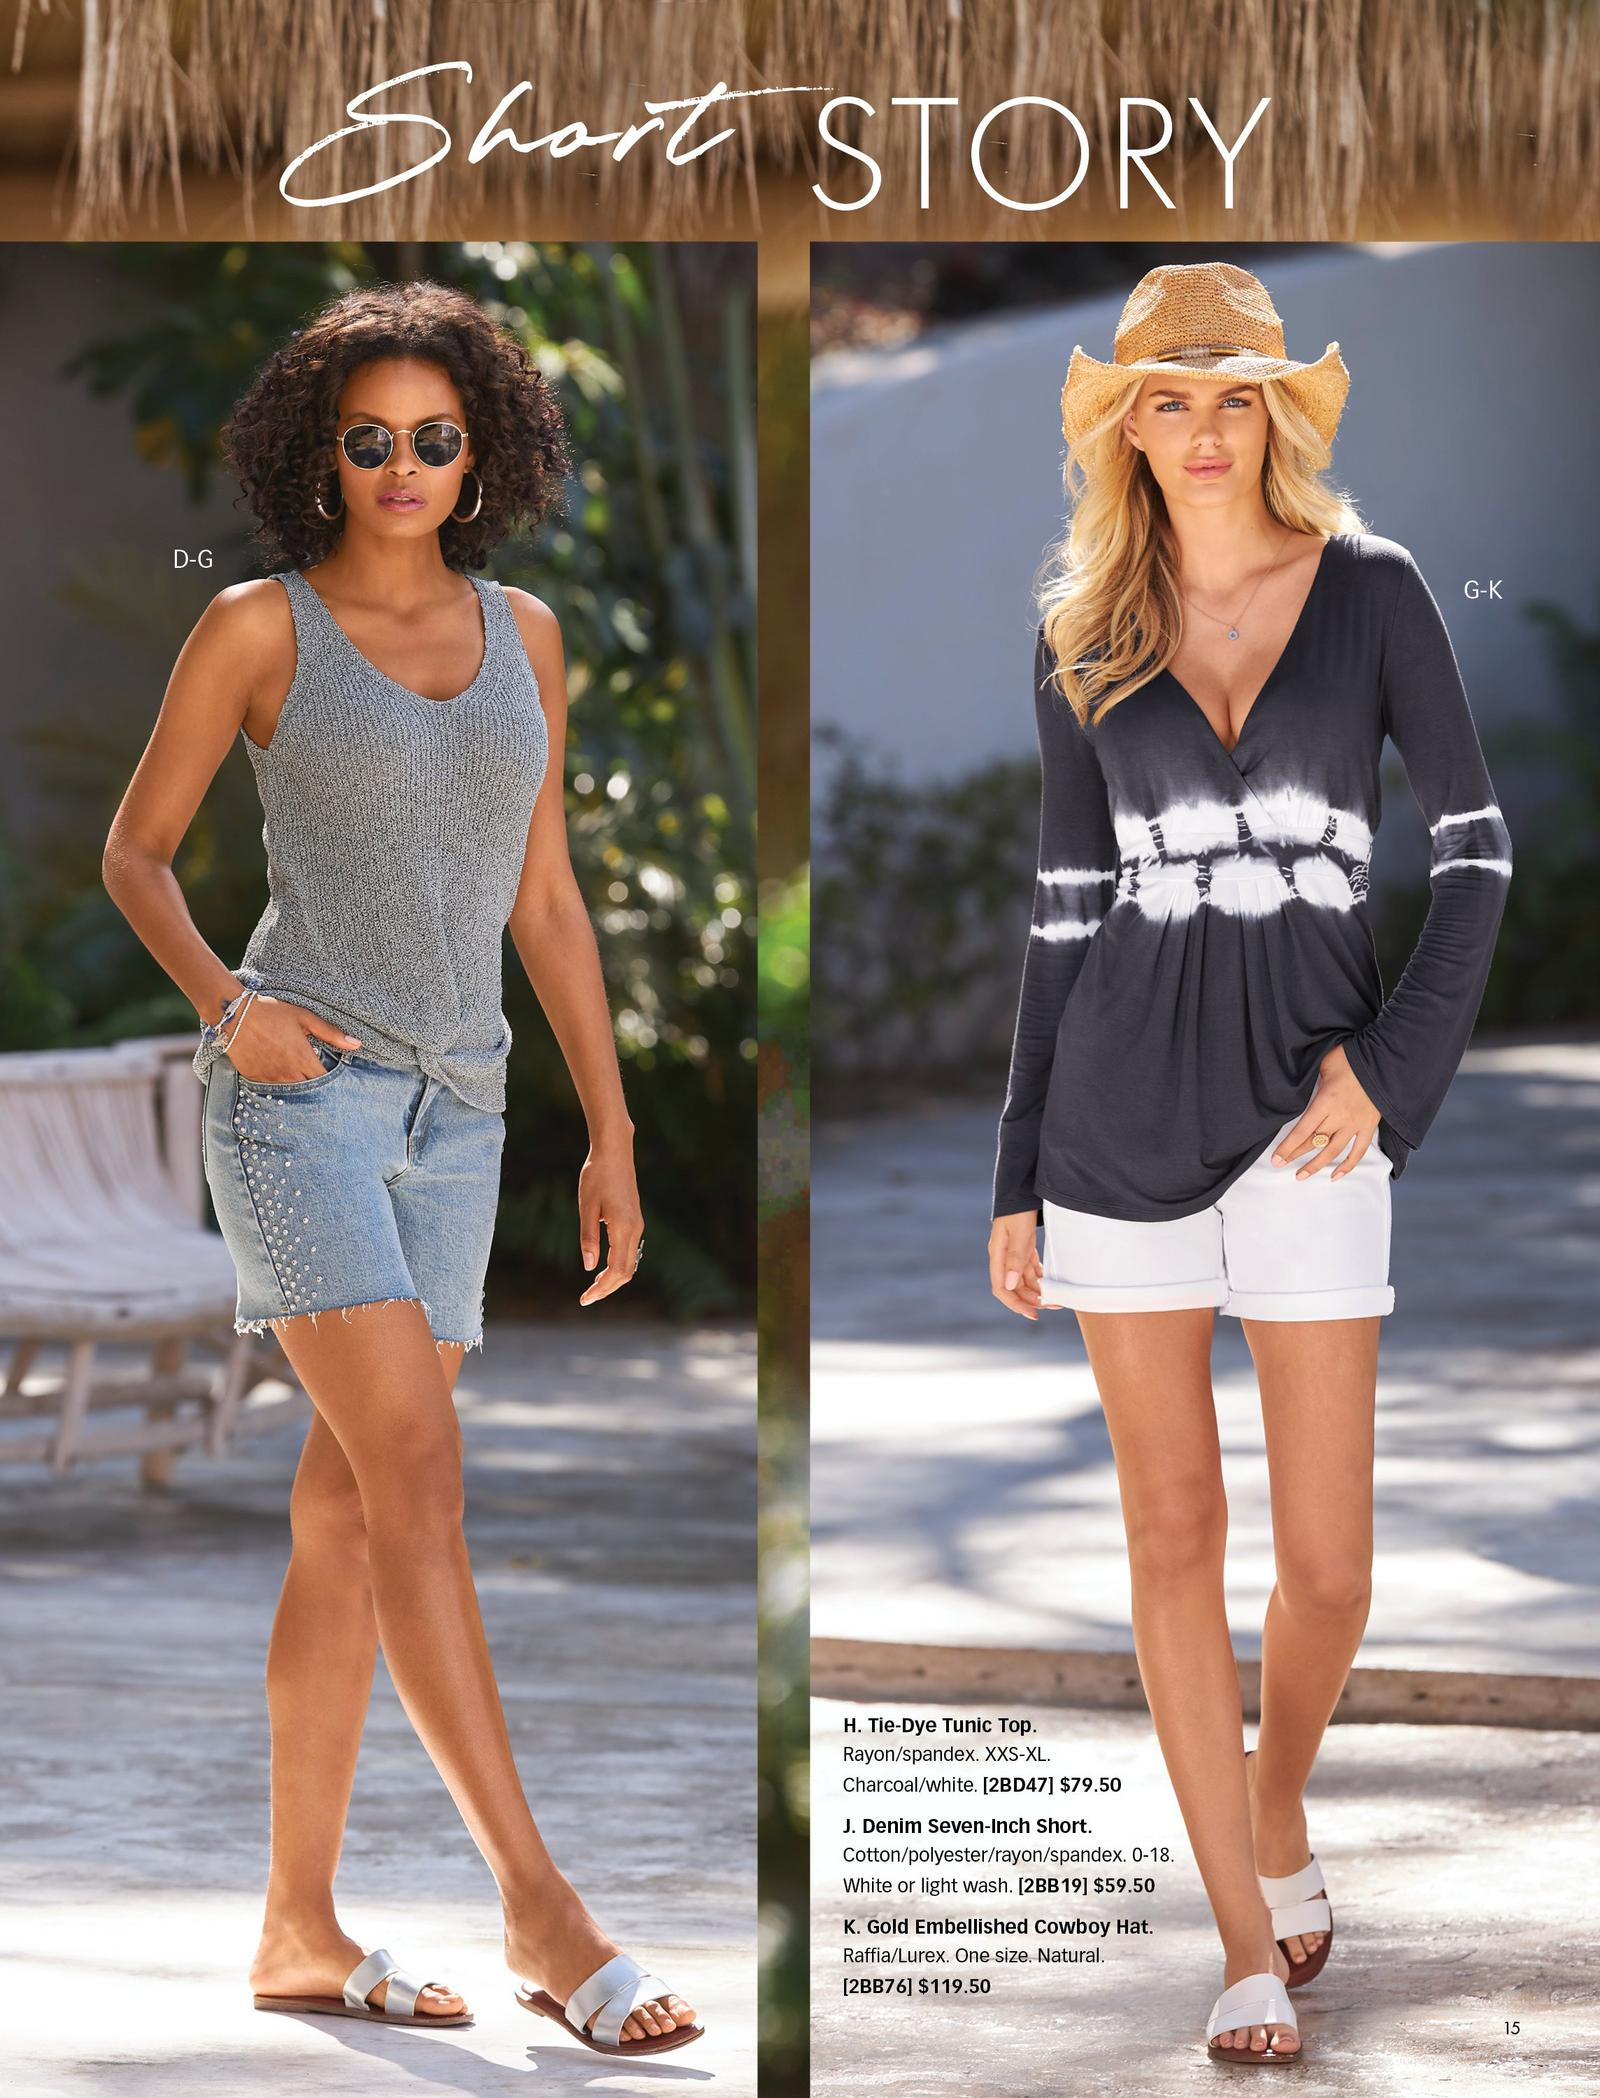 eft model wearing a gray sleeveless knotted sweater, embellished denim shorts, silver double-strap sandals, gold hoop earrings, and sunglasses. right model wearing a gray and white tie-dye long-sleeve tunic top, white denim shorts, white double strap sandals, and gold embellished straw hat.